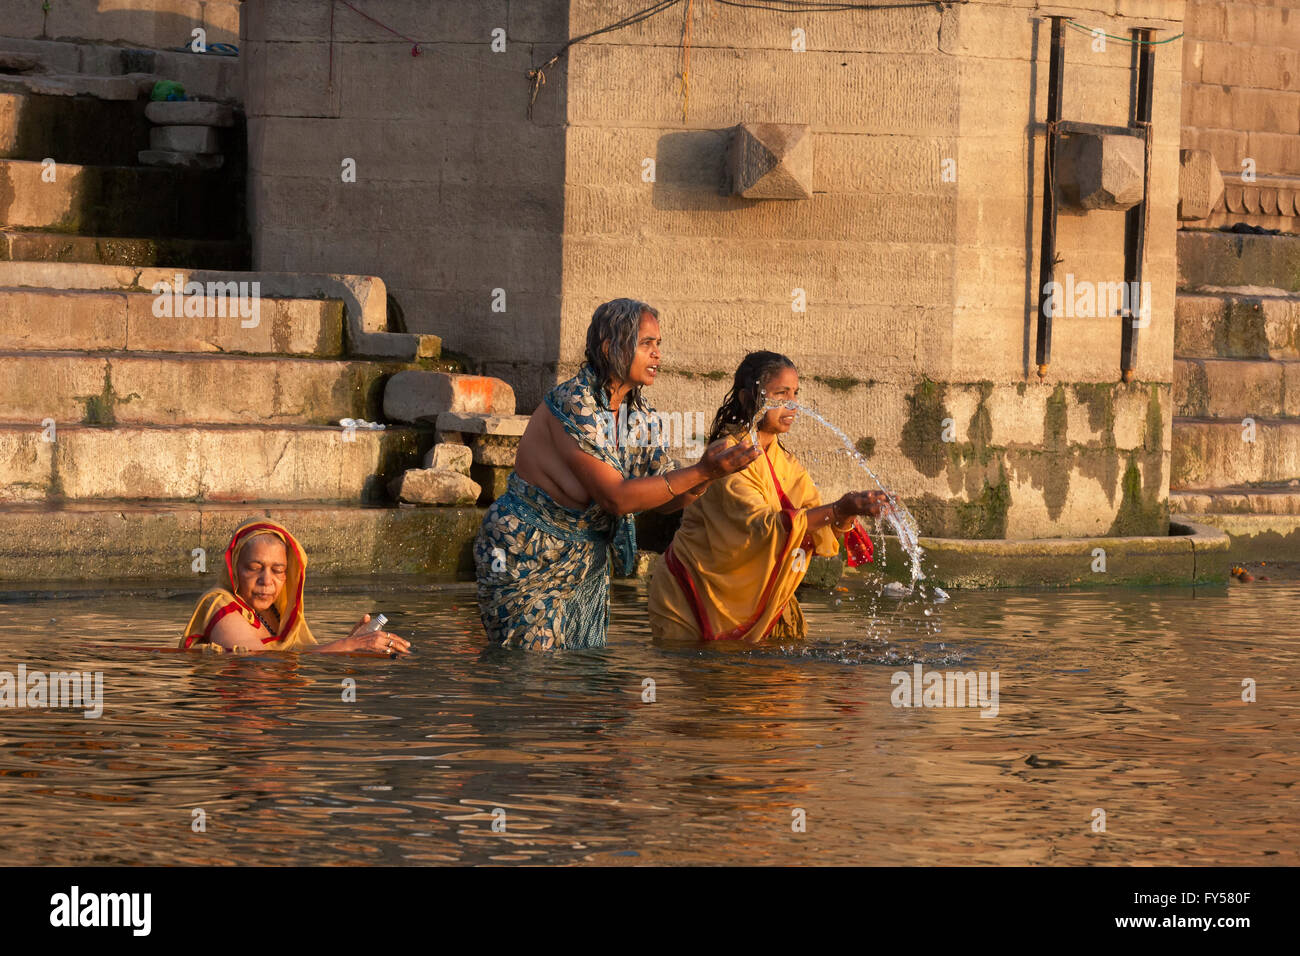 Hinduism and Buddhism have similarities in the Ganges culture, these unidentified hindu and buddhists - Stock Image